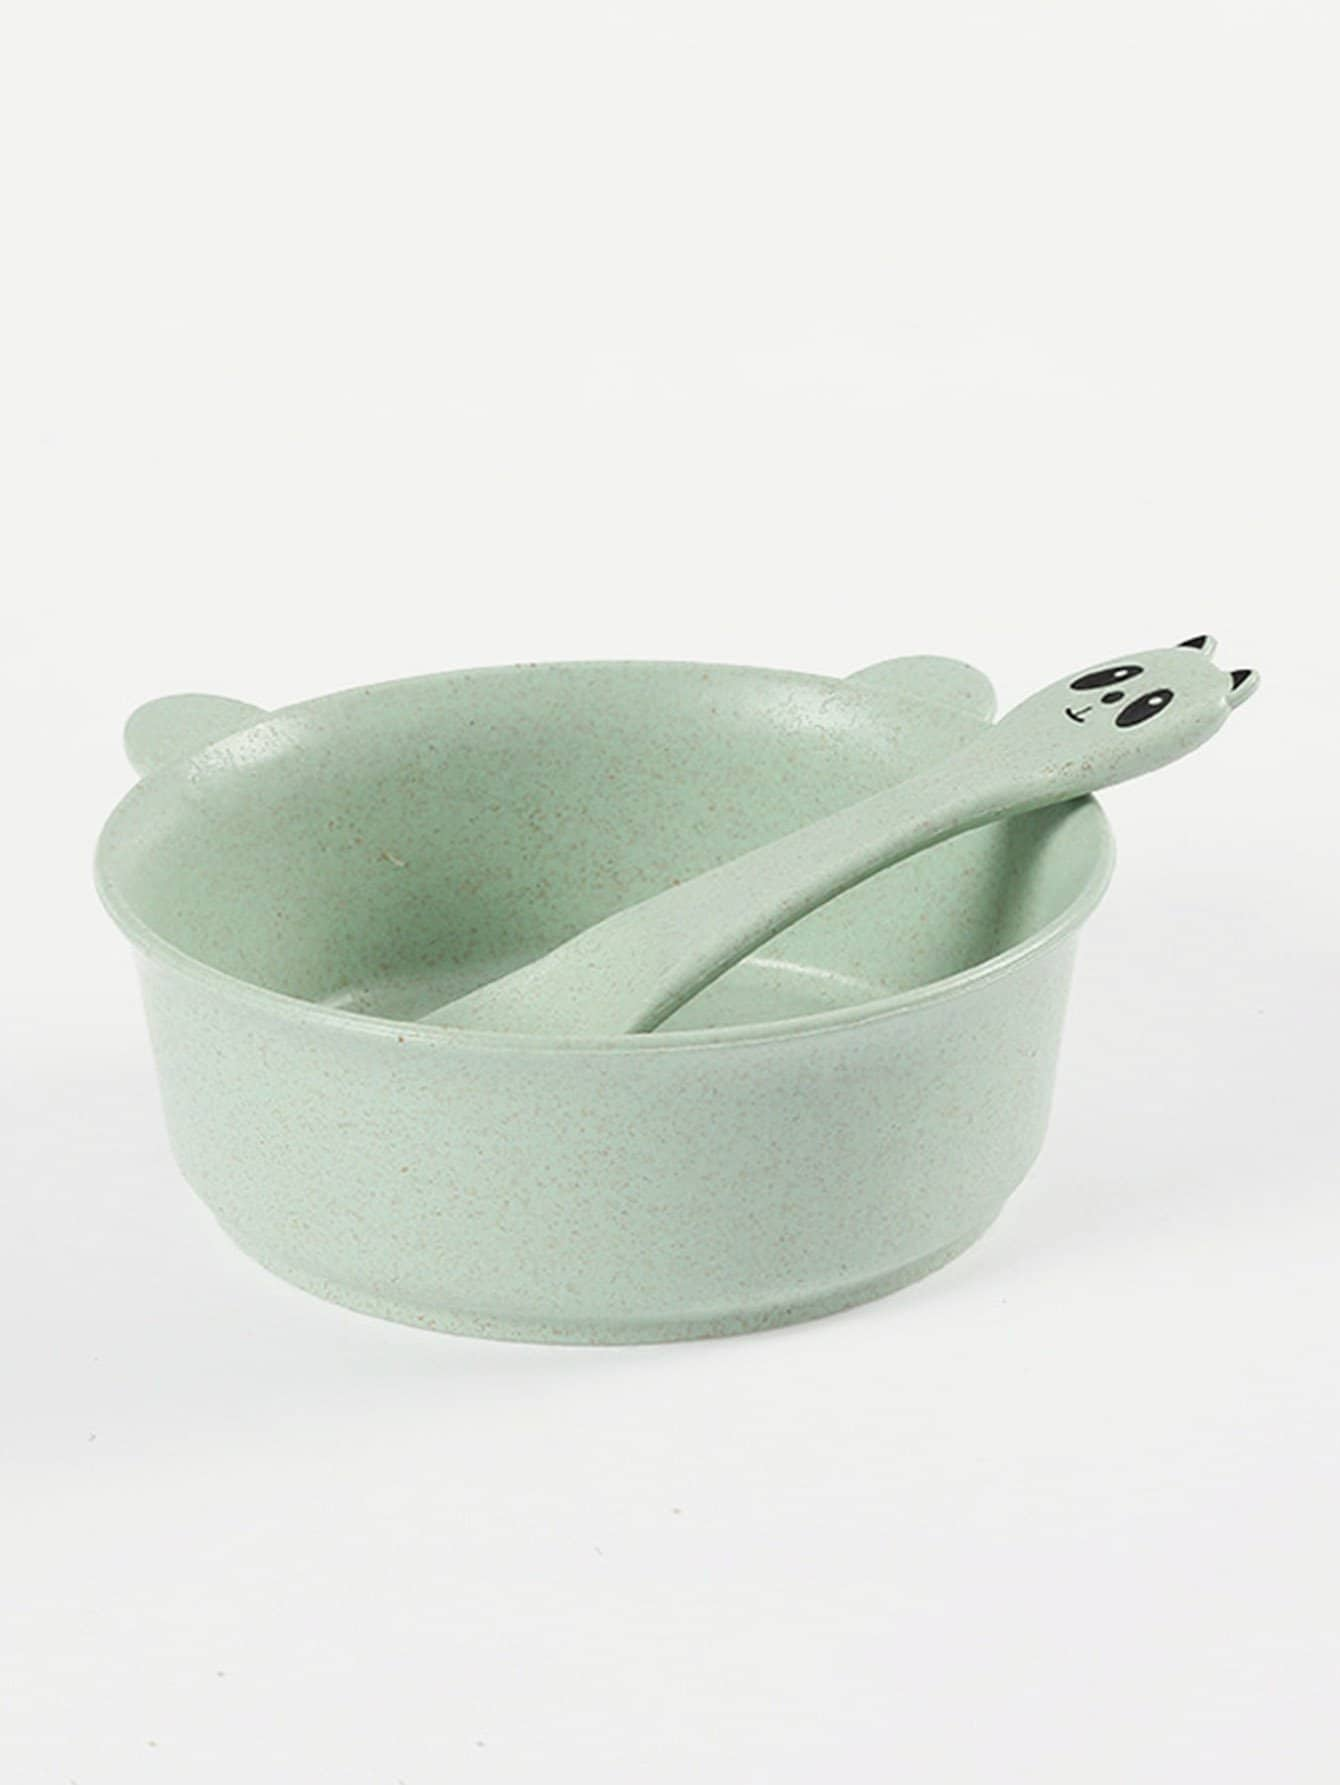 Panda Shaped Bowl With Spoon